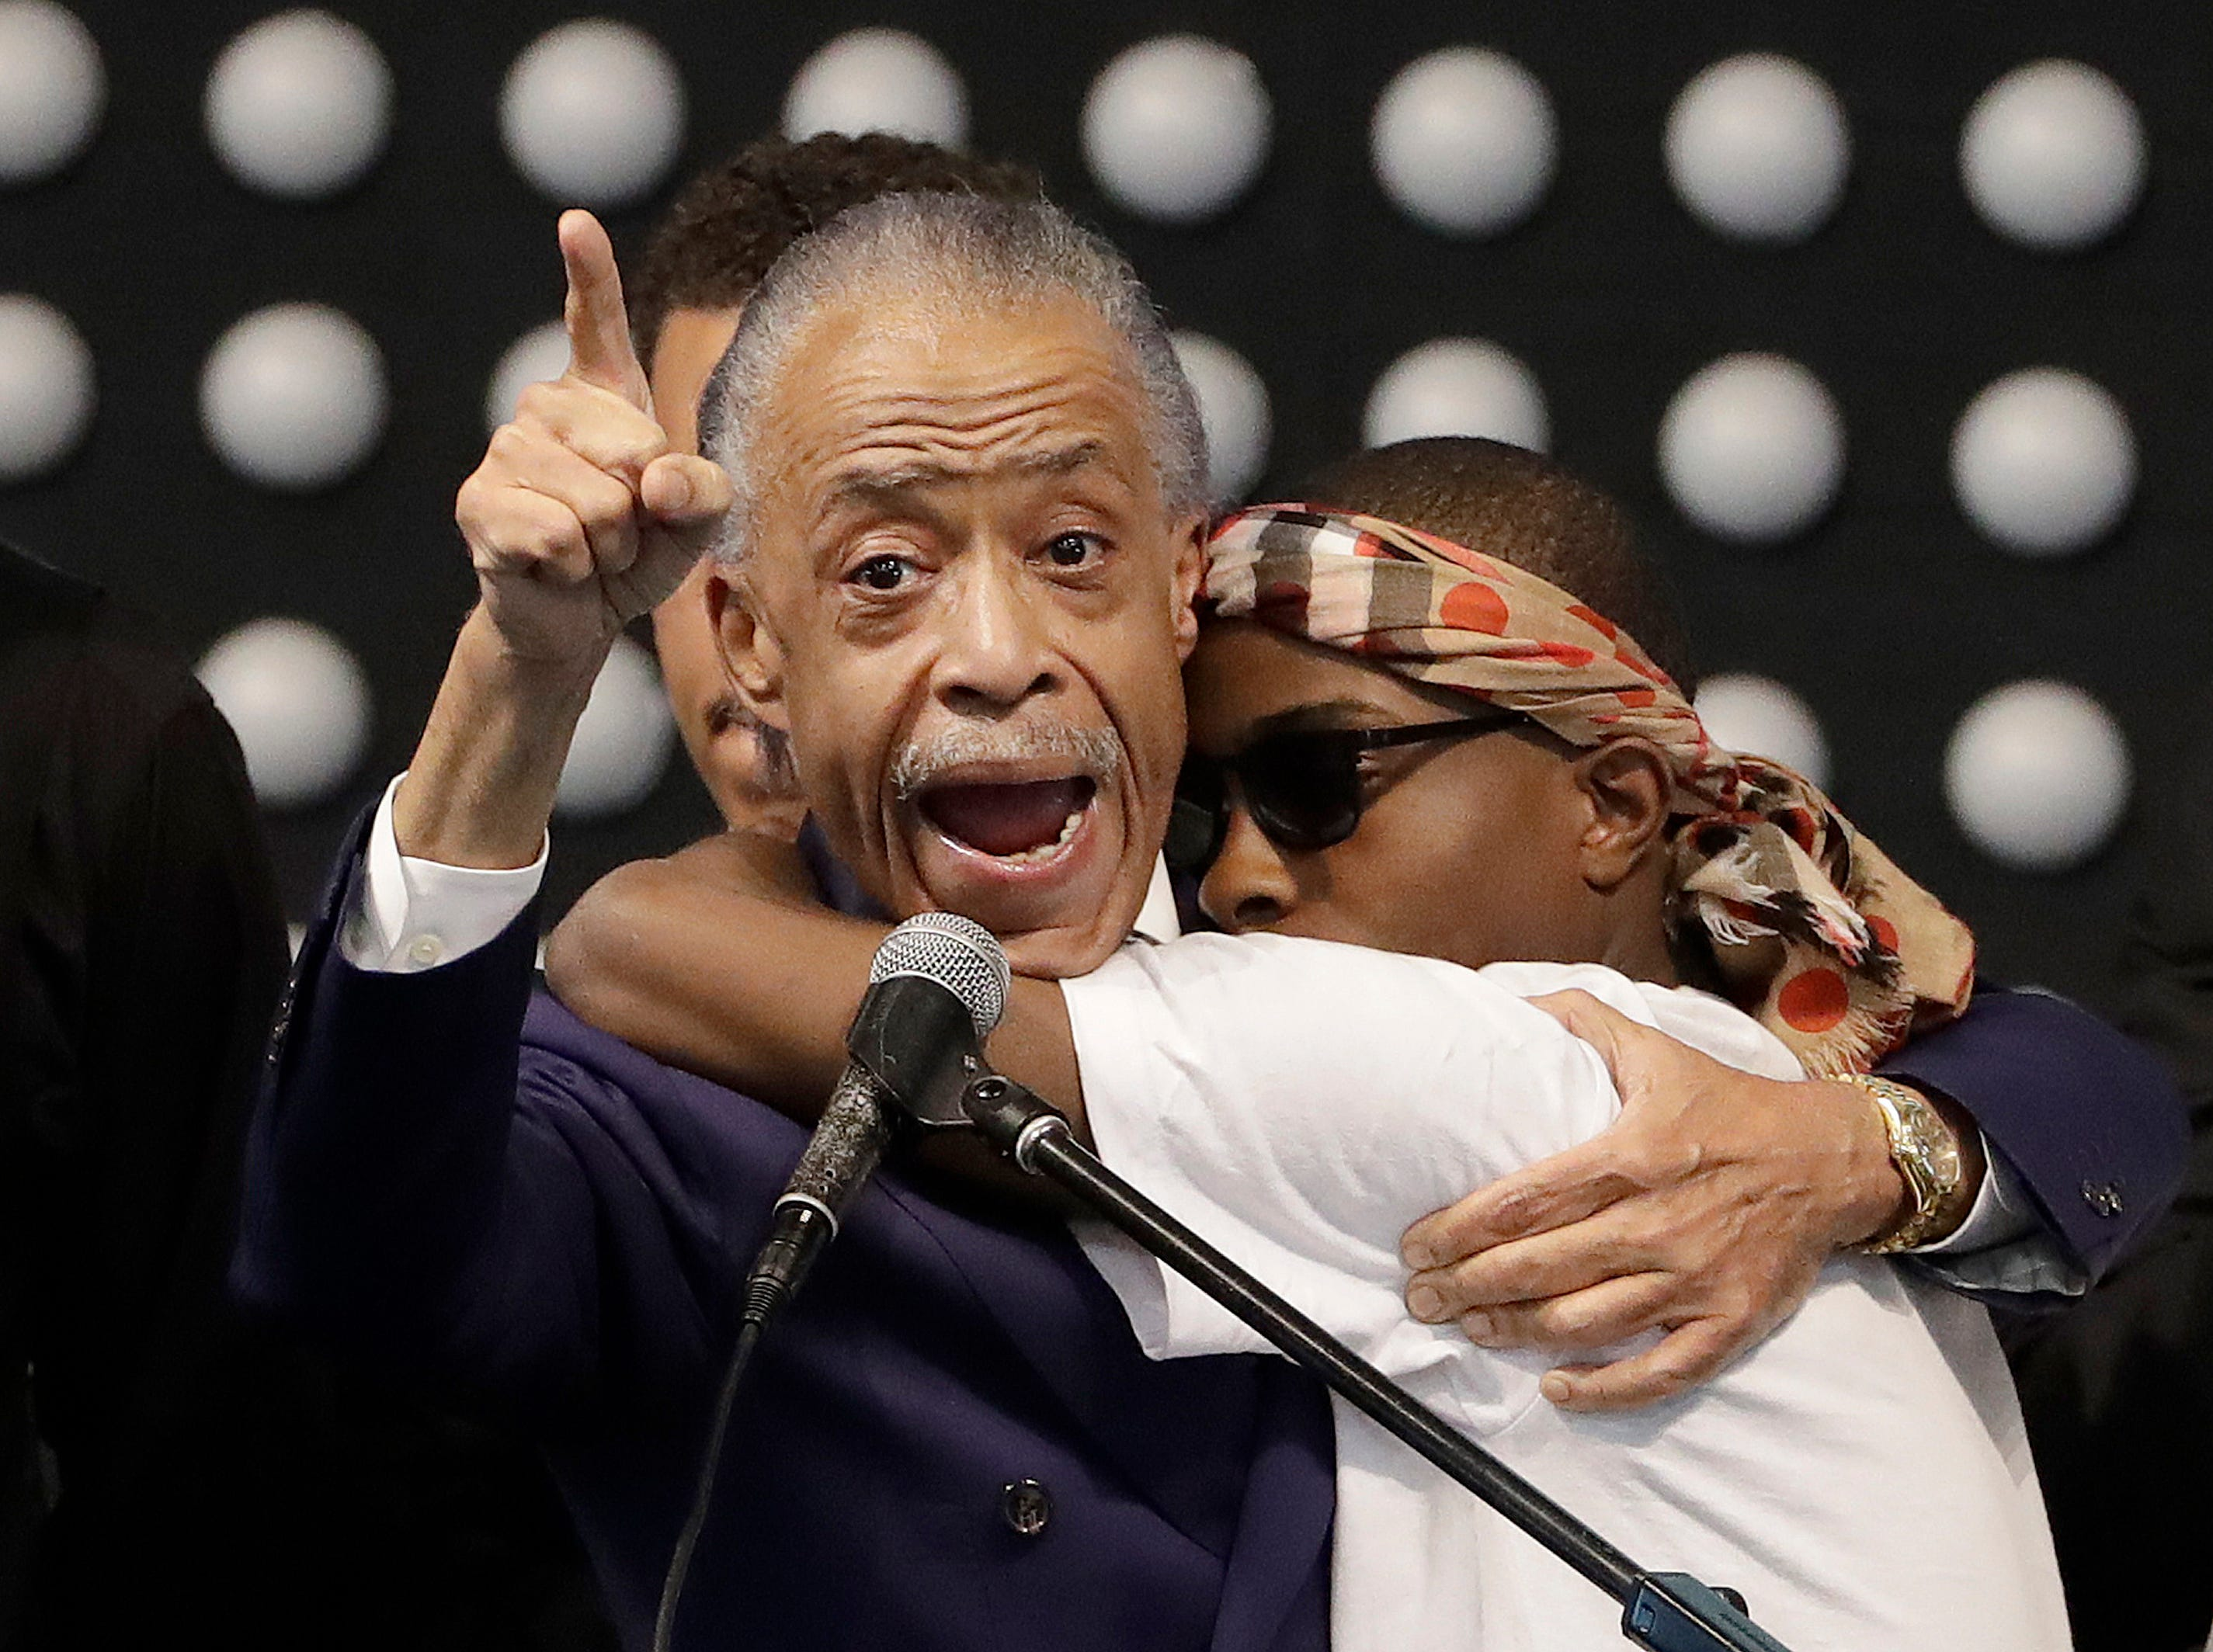 March 29, 2018: Rev. Al Sharpton, left, hugs Stevante Clark while speaking during the funeral services for police shooting victim Stephon Clark at Bayside Of South Sacramento Church in Sacramento, Calif. Clark, who was unarmed, was shot and killed by Sacramento Police Officers.